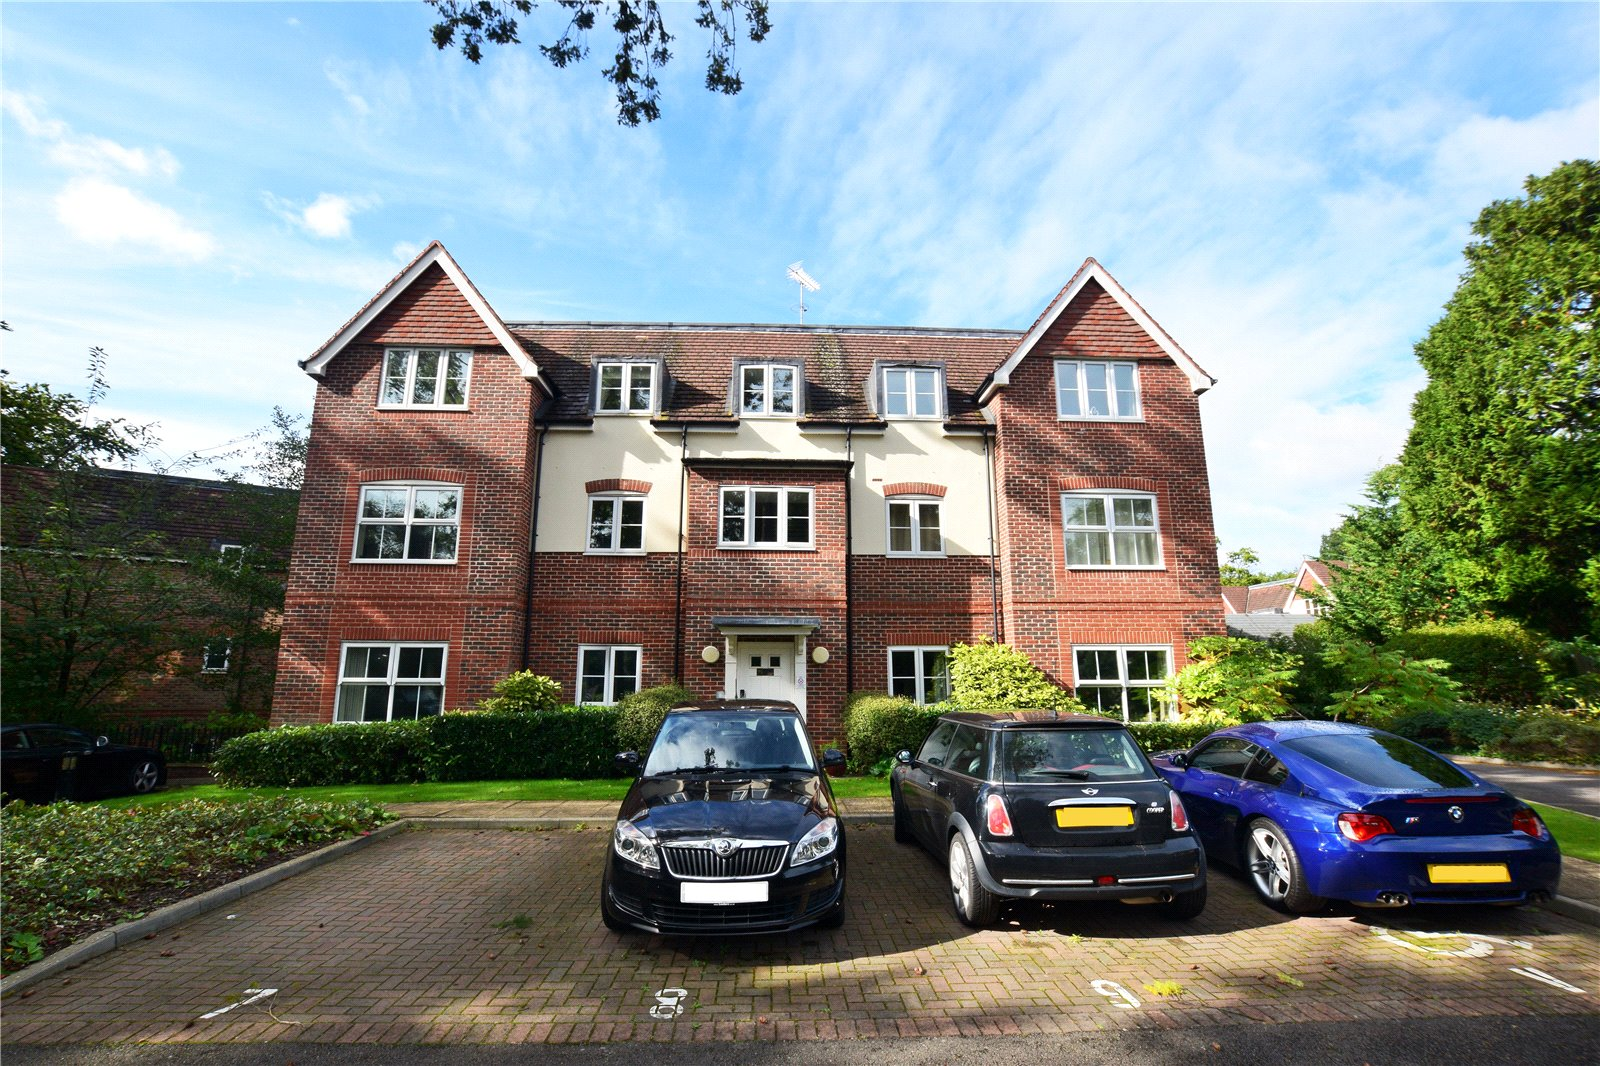 2 Bedrooms Apartment Flat for rent in St. Catherines Wood, Camberley, Surrey, GU15